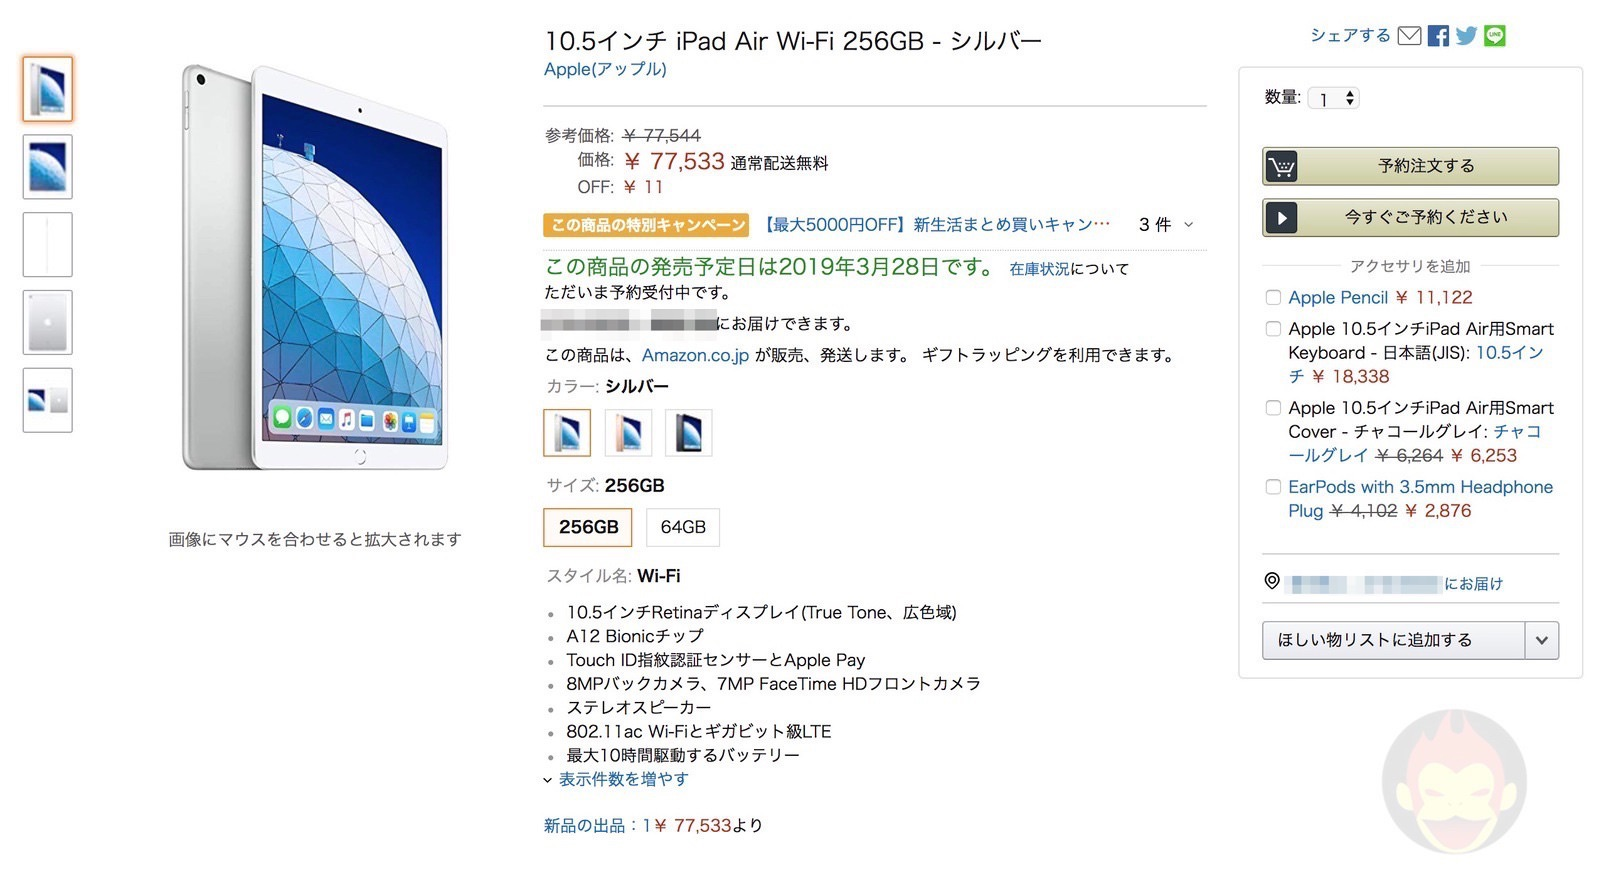 New iPad Air on Sale at Amazon 01